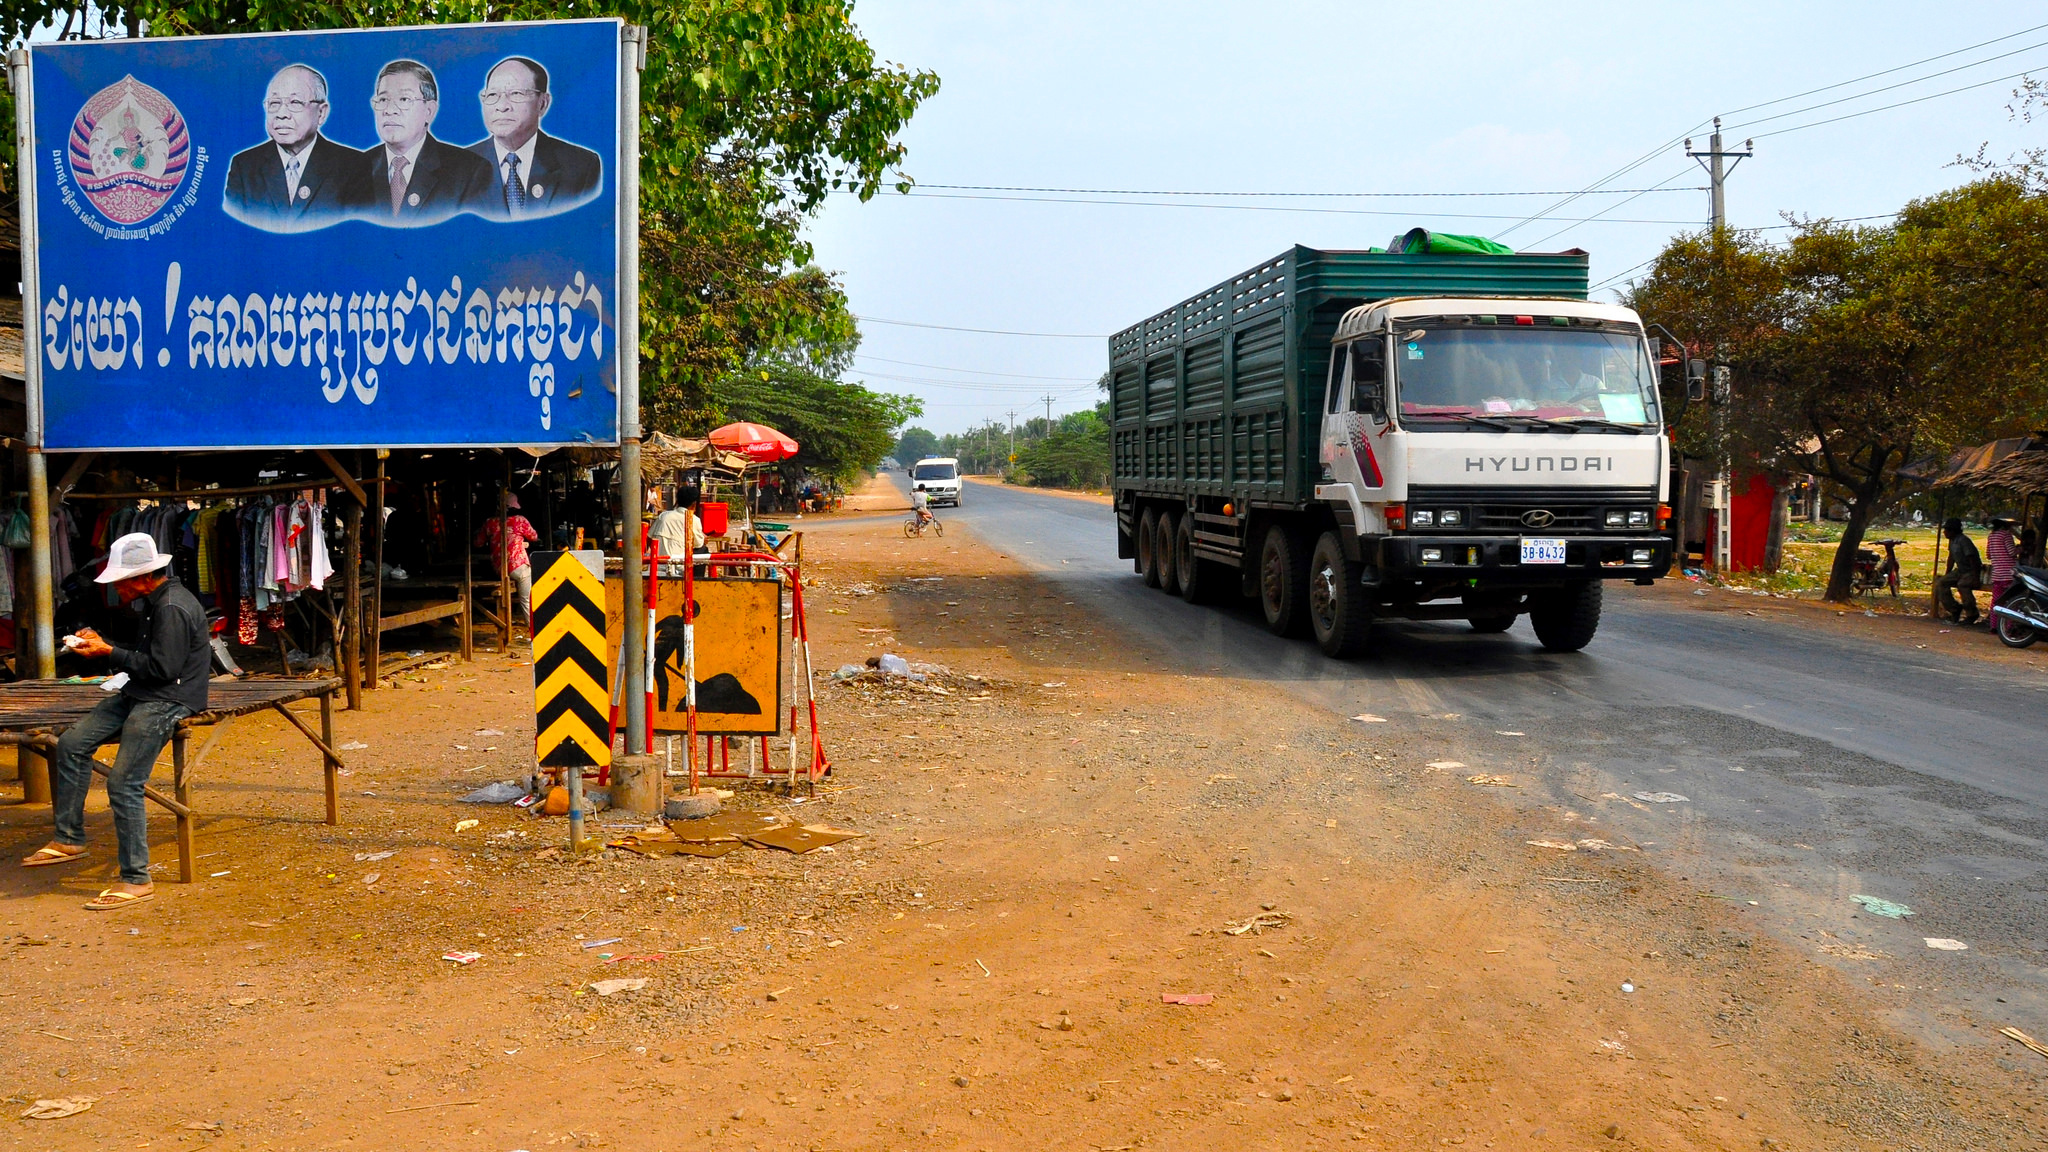 Image result for One of the ubiquitous billboards featuring Cambodian strongman Hun Sen. Photo: Flickr user Erwan Deverre, Creative Commons